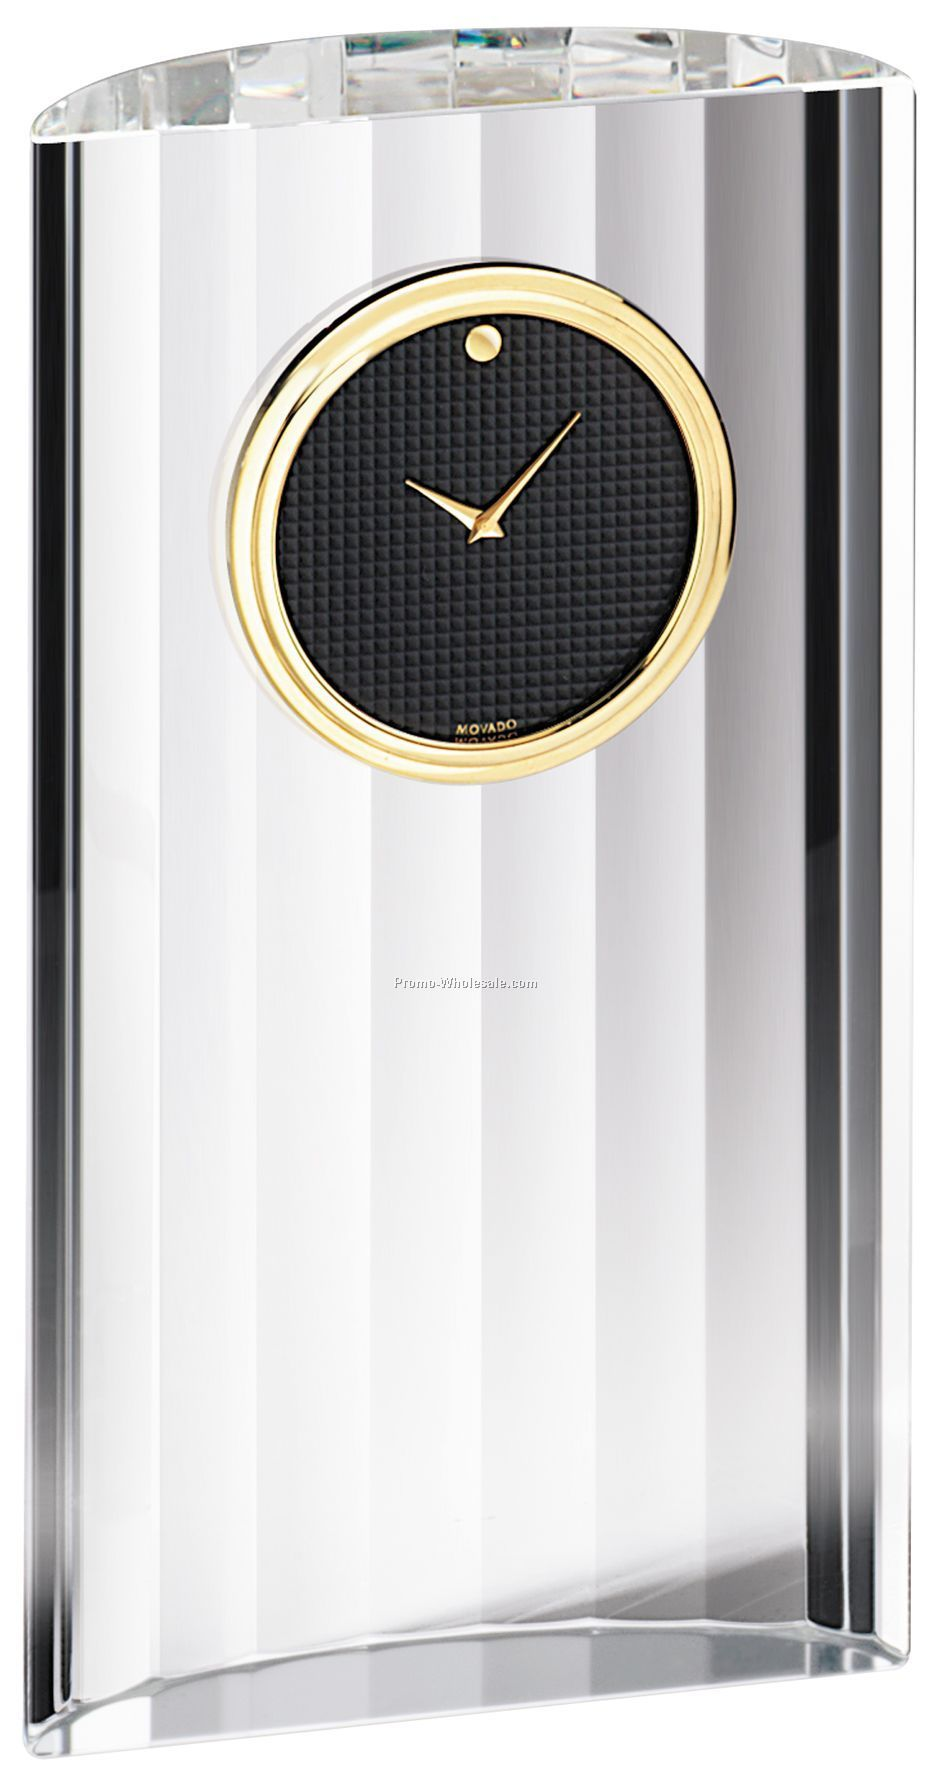 Movado Black Museum Dial Crystal Clock W/ Gold Accents